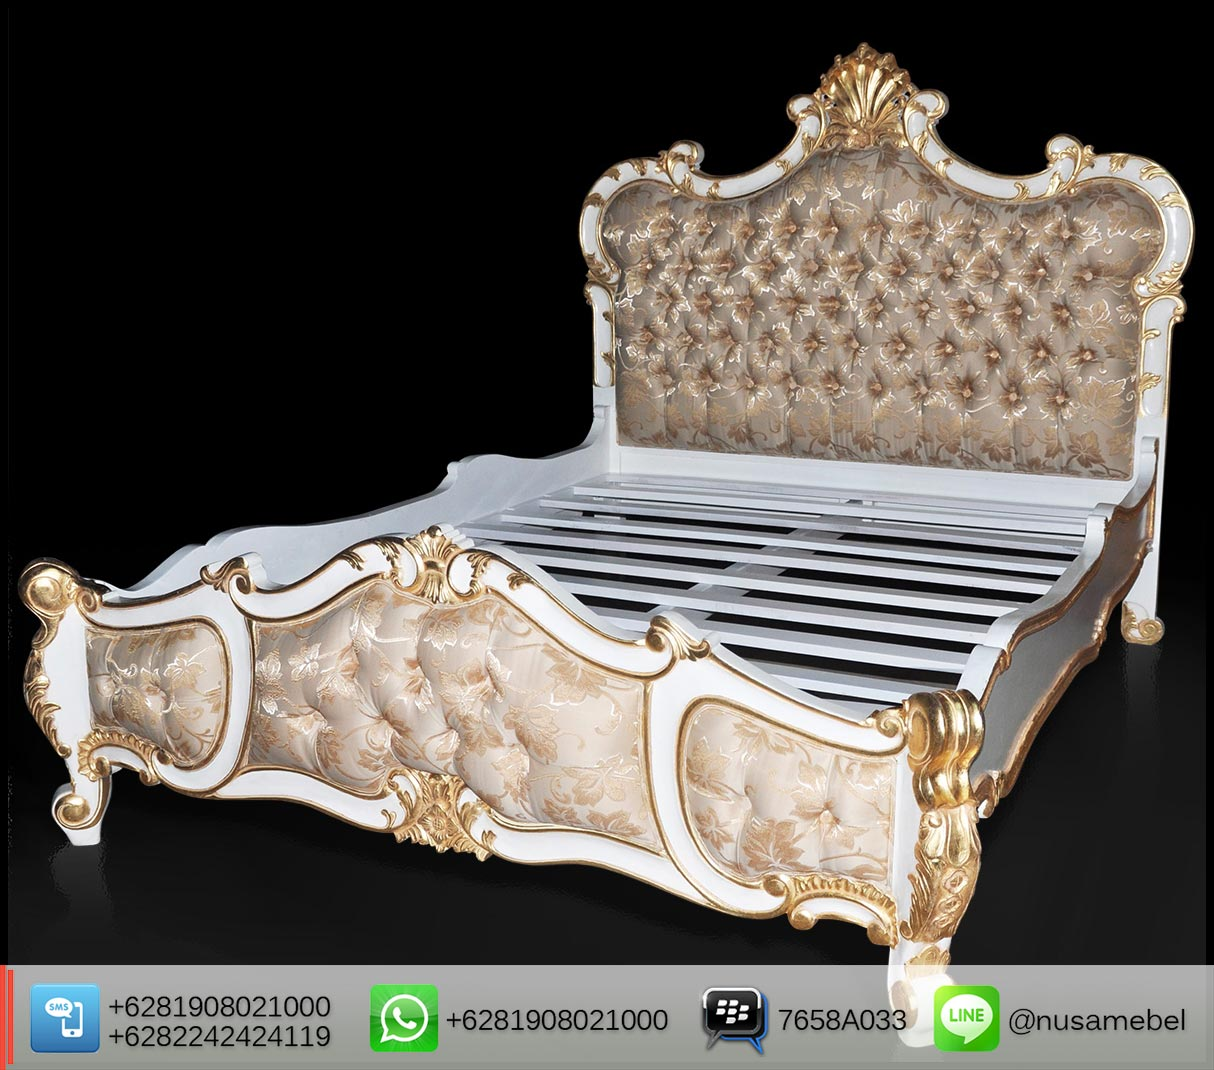 Mahogany French Bed in White Gold Nexter